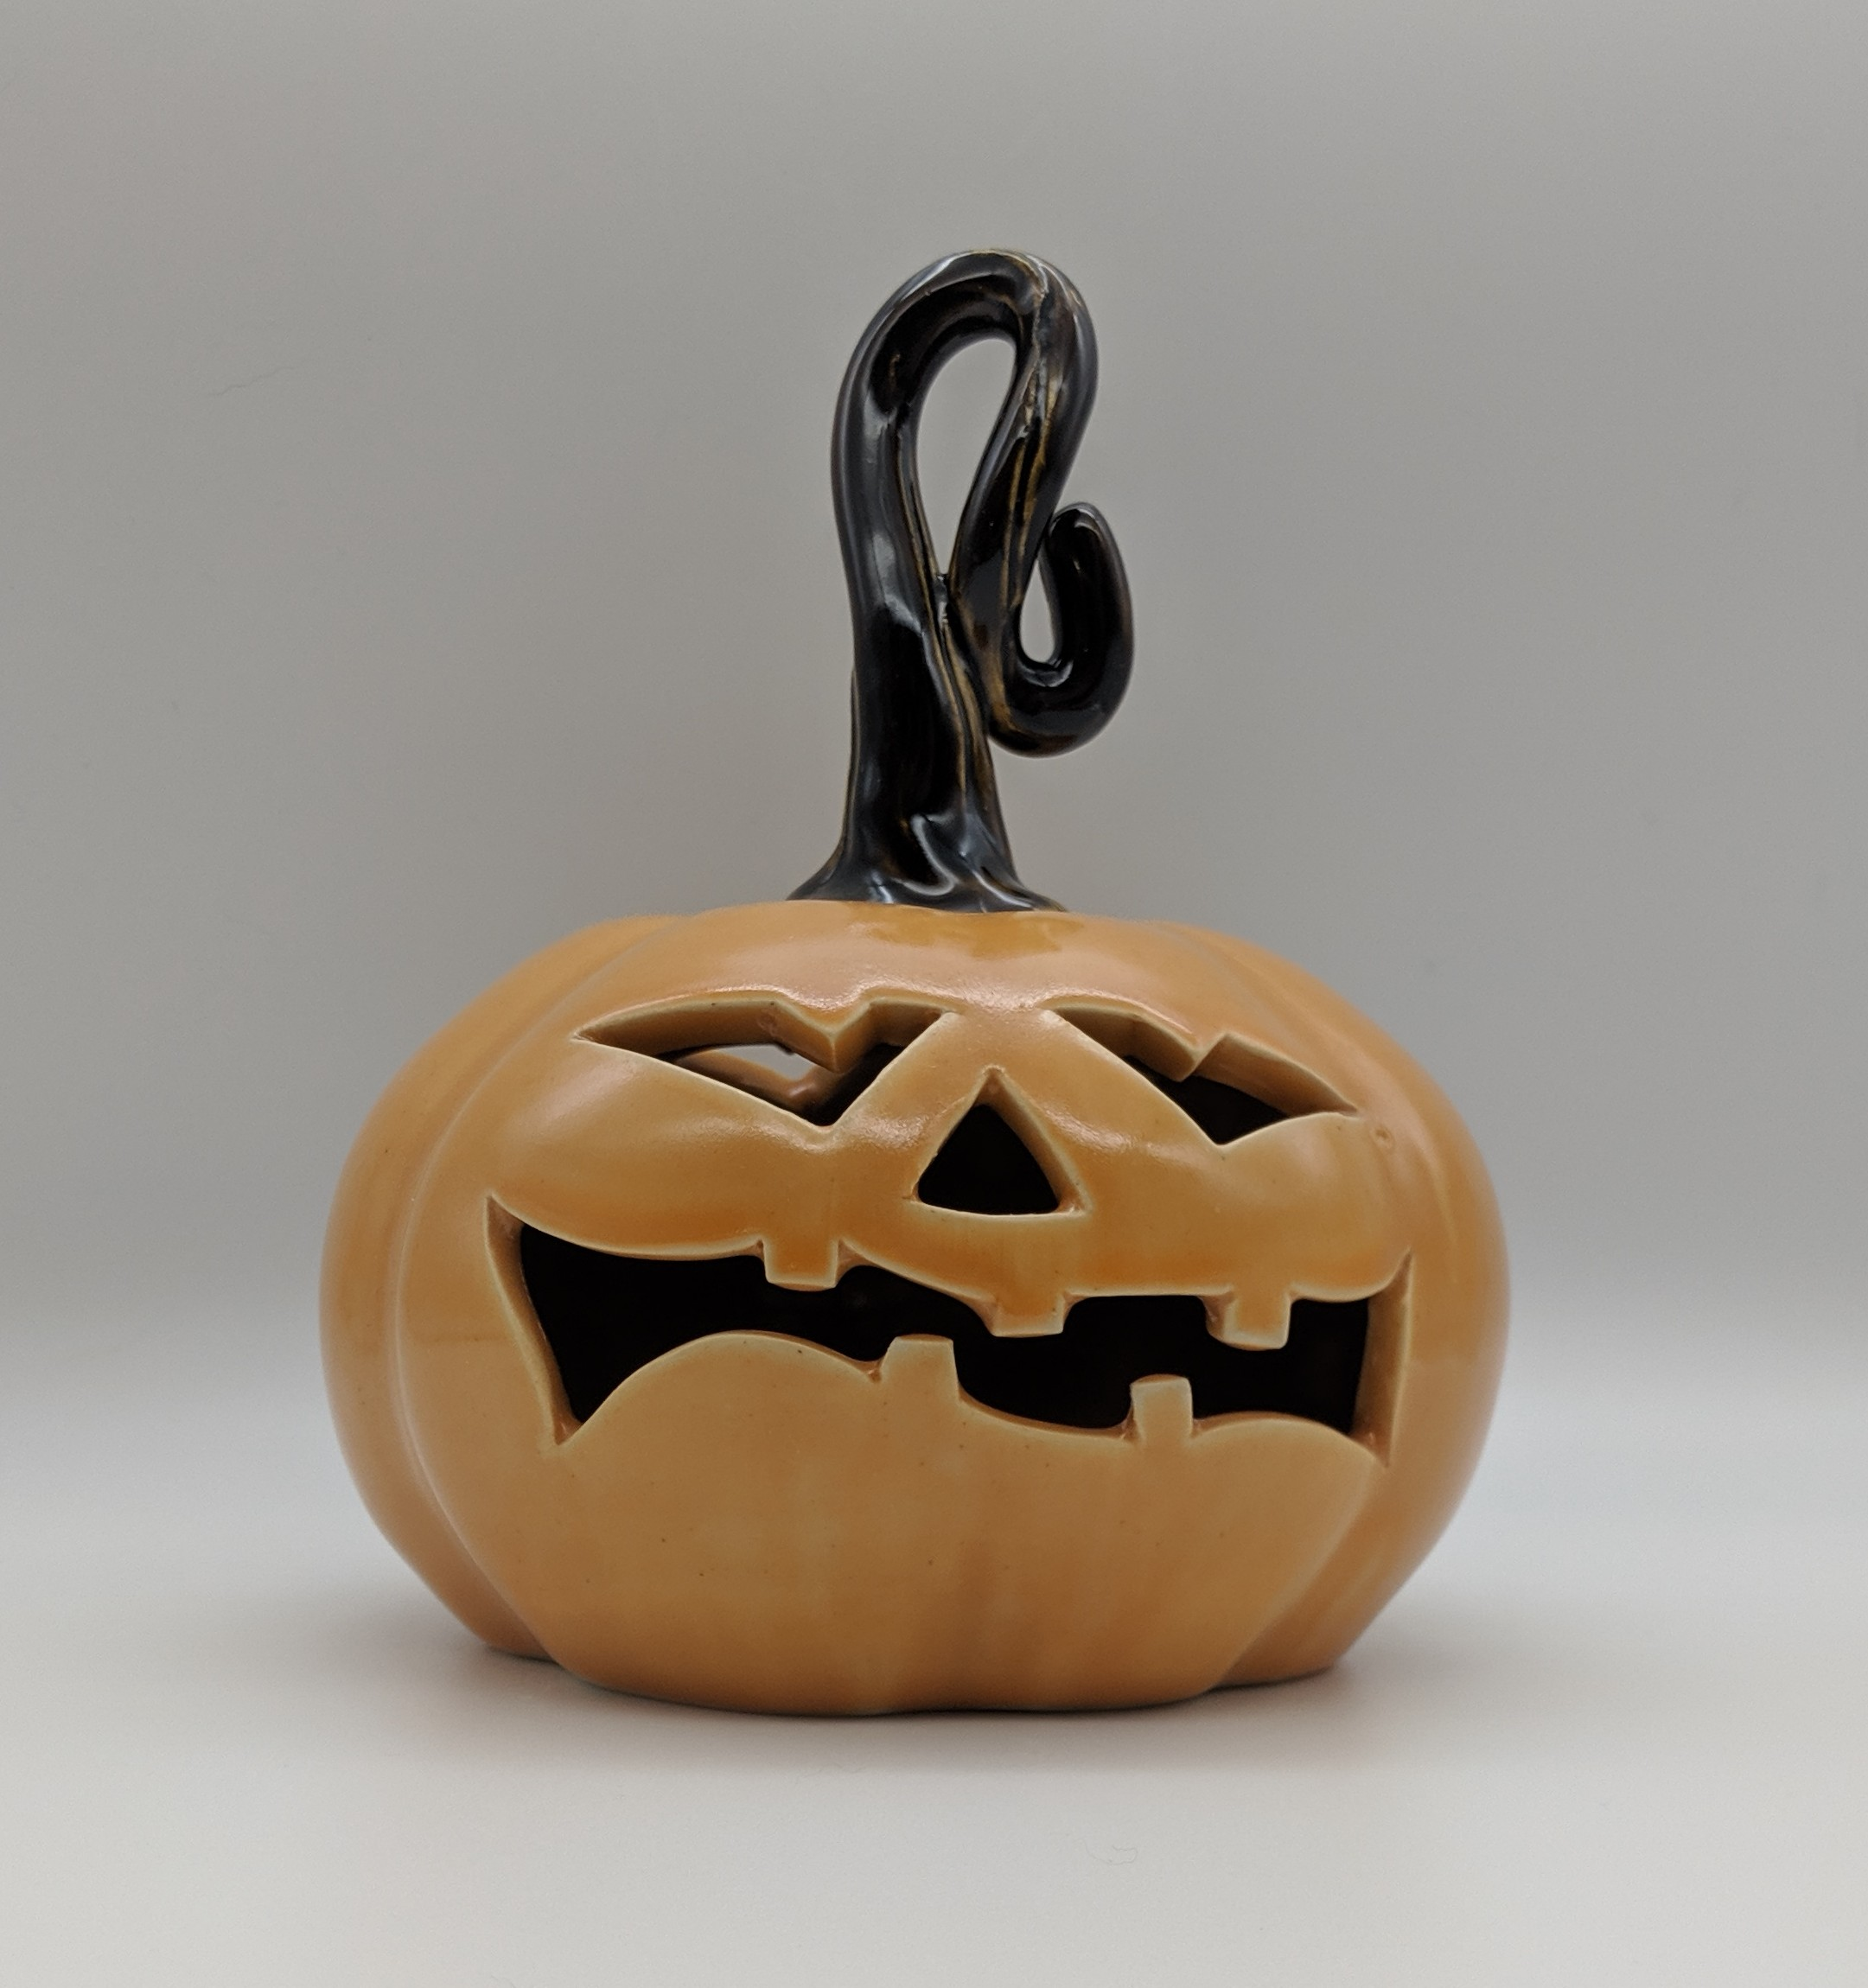 Twisty Stem Jack-o-lantern 2020